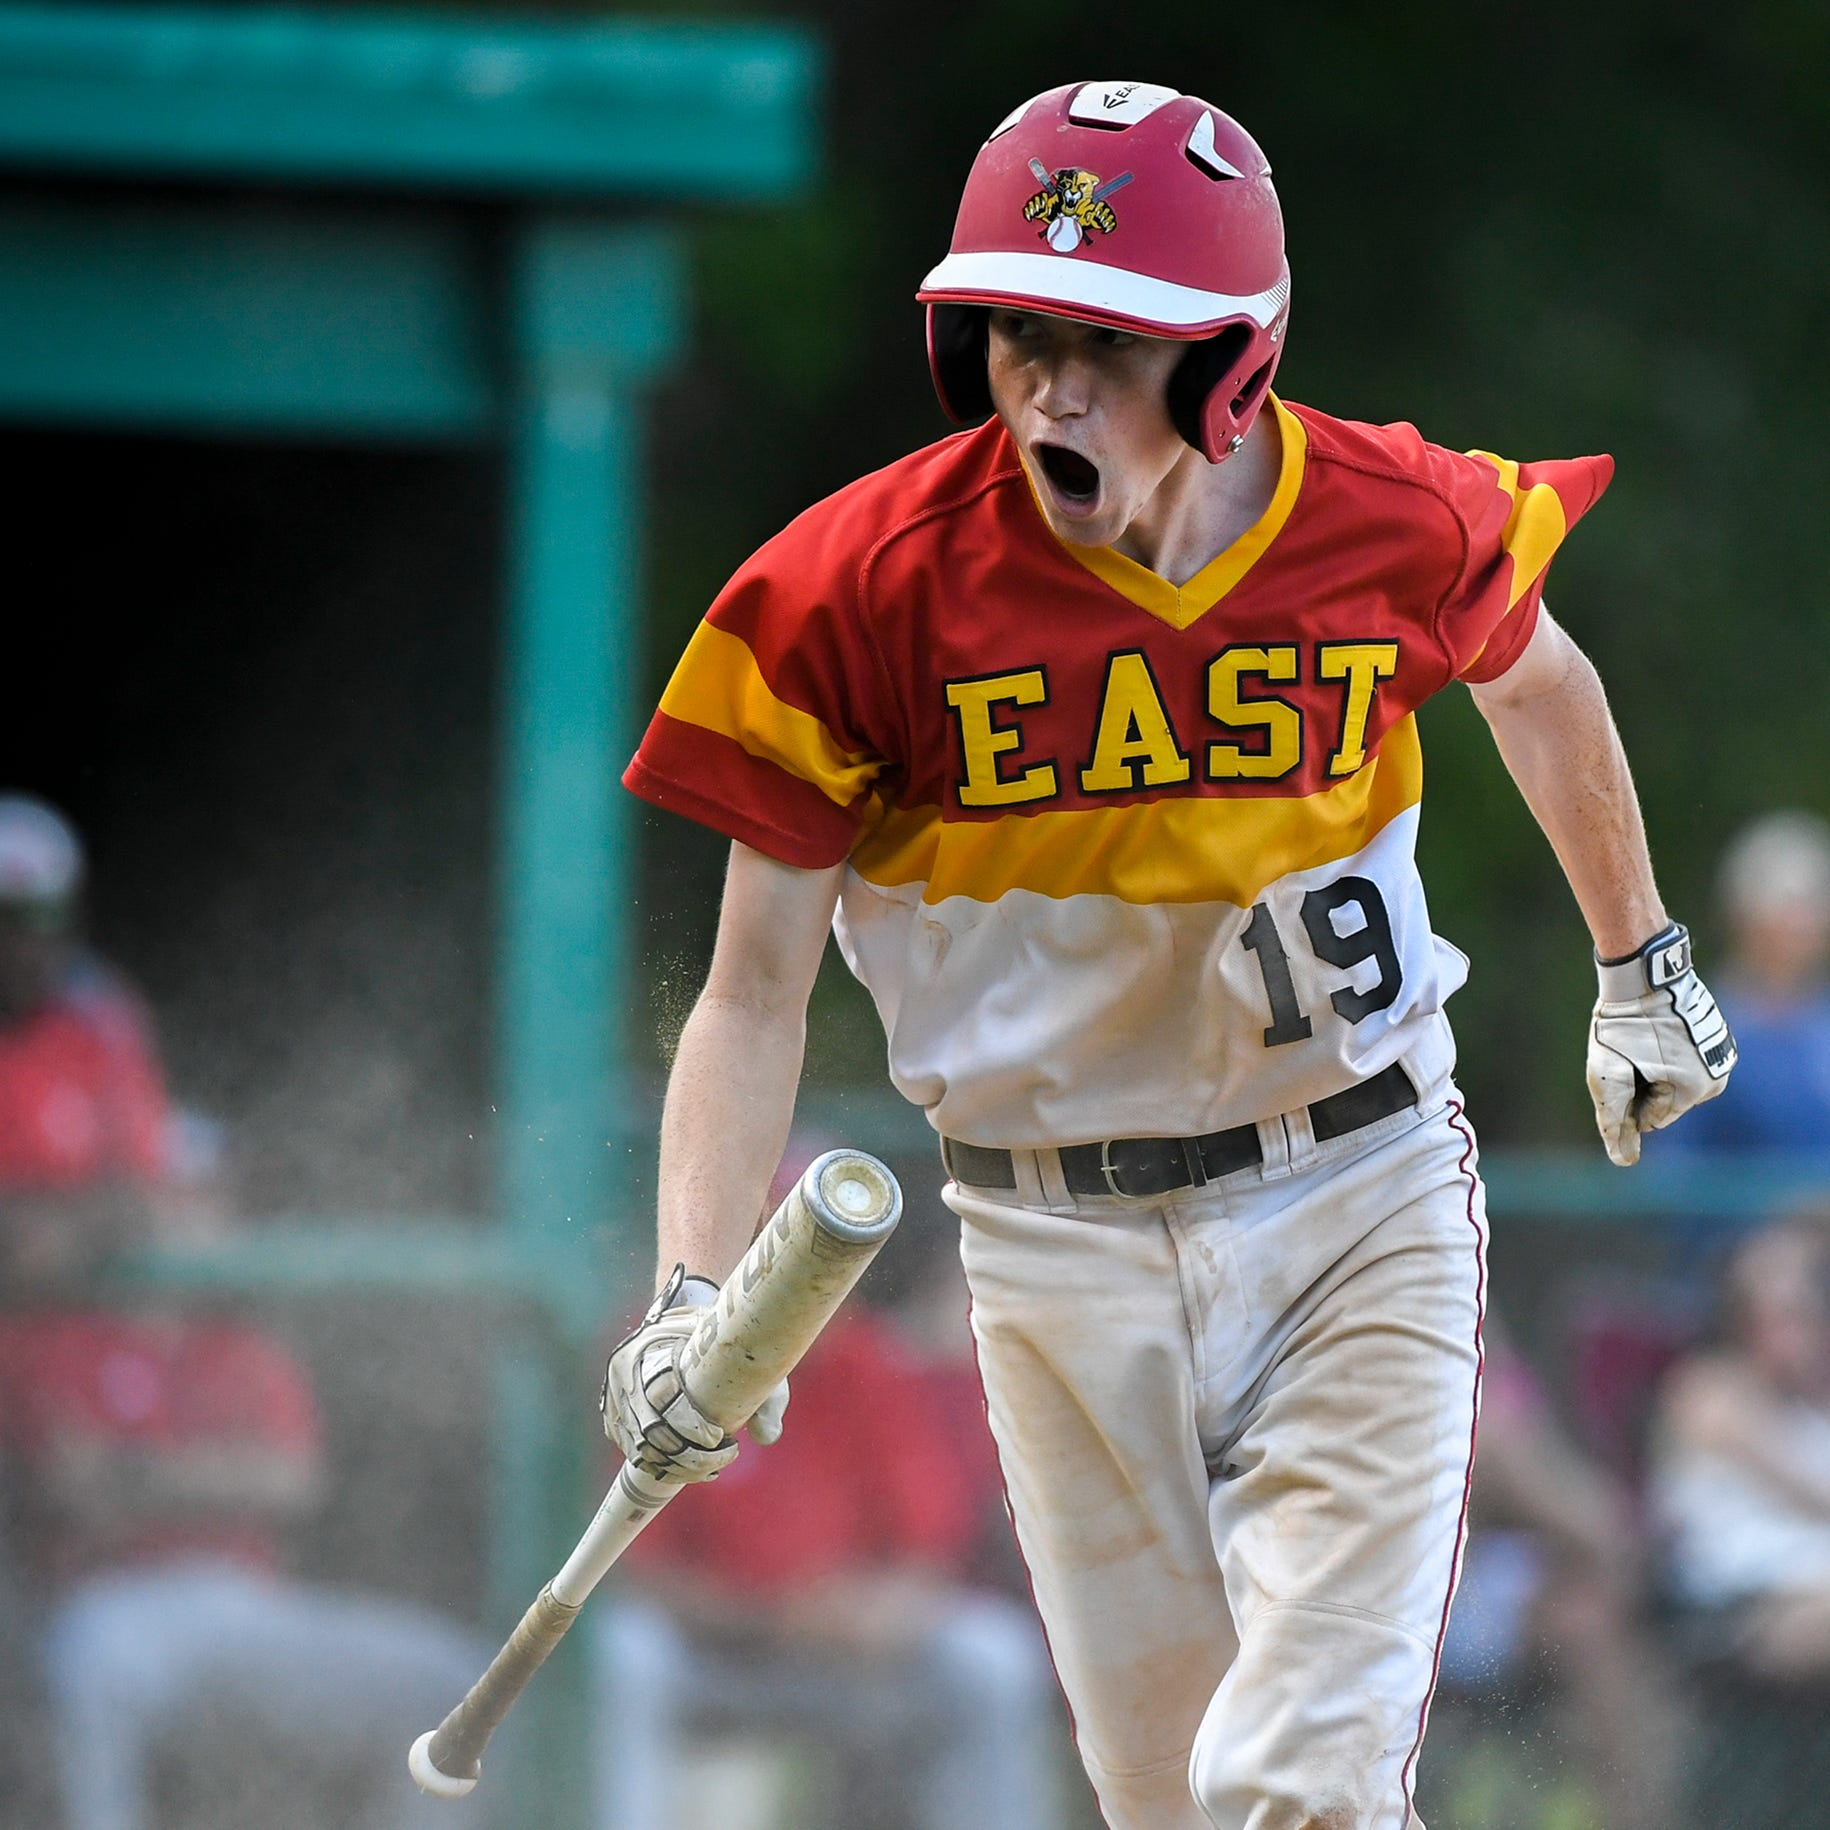 Baseball: Cherry Hill East wins 1st playoff game since 2014, 1st division title since 2002